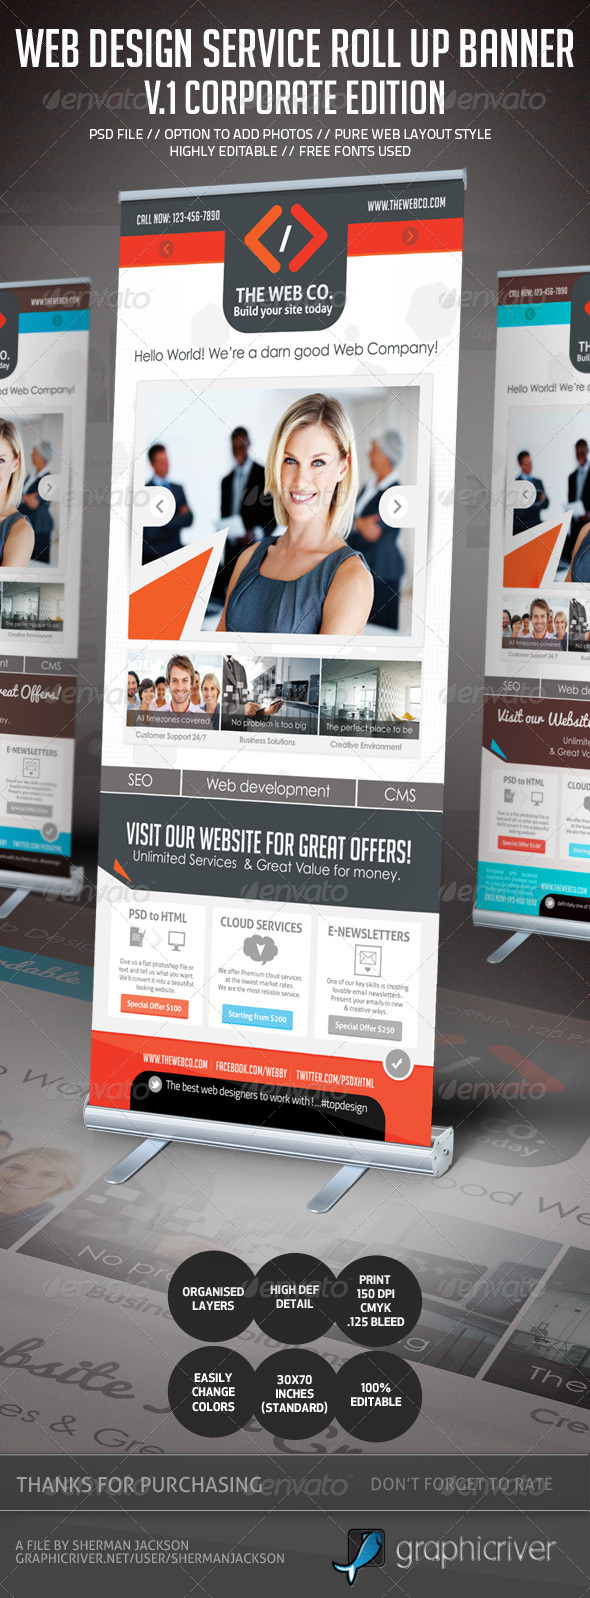 GraphicRiver Web Design Service Roll Up Banner Signage 1 4610673